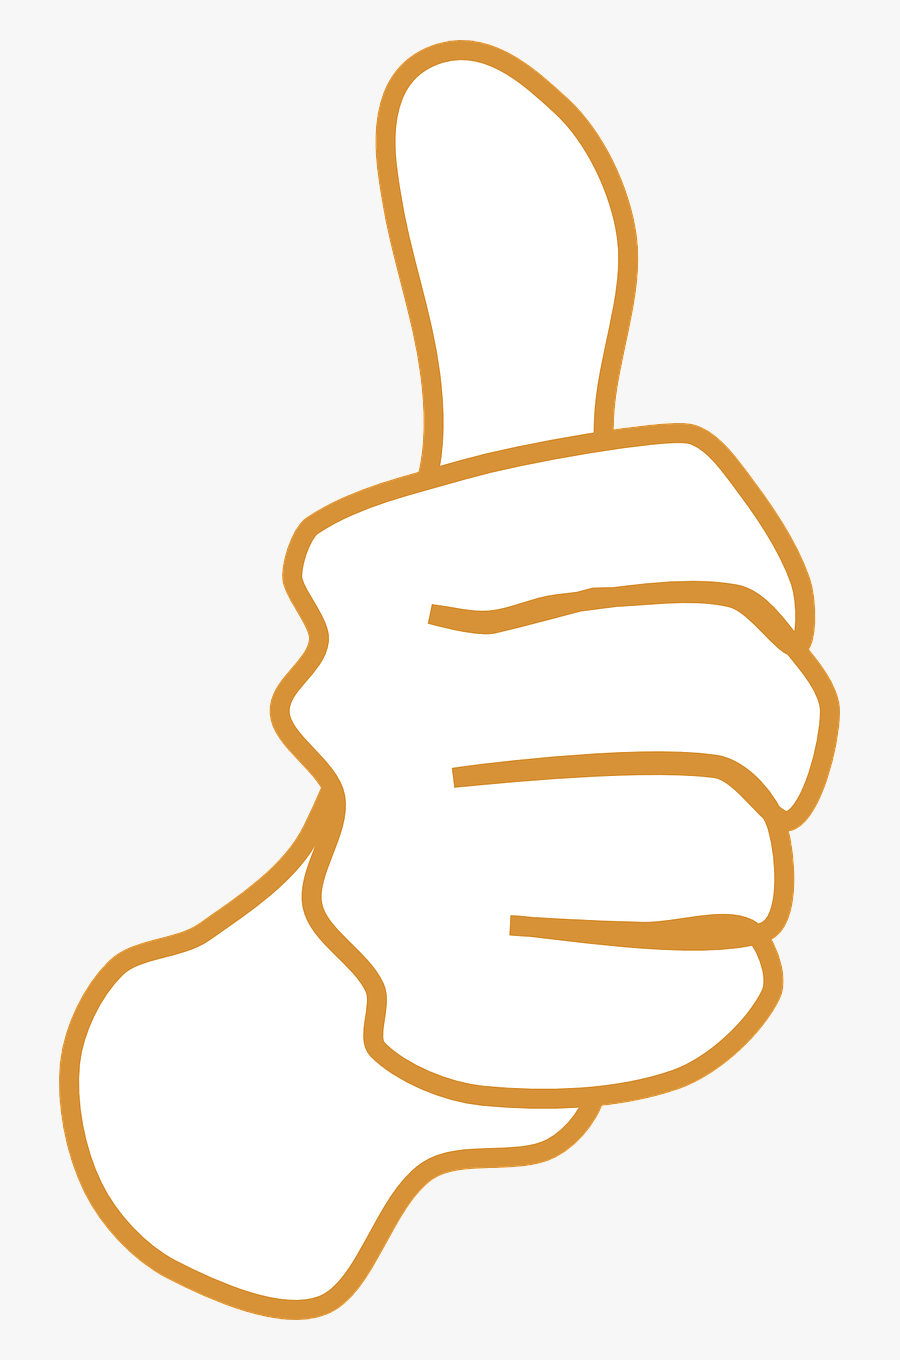 Thumb Brown Okay Free Picture - Cartoon Thumbs Up Black Background, Transparent Clipart